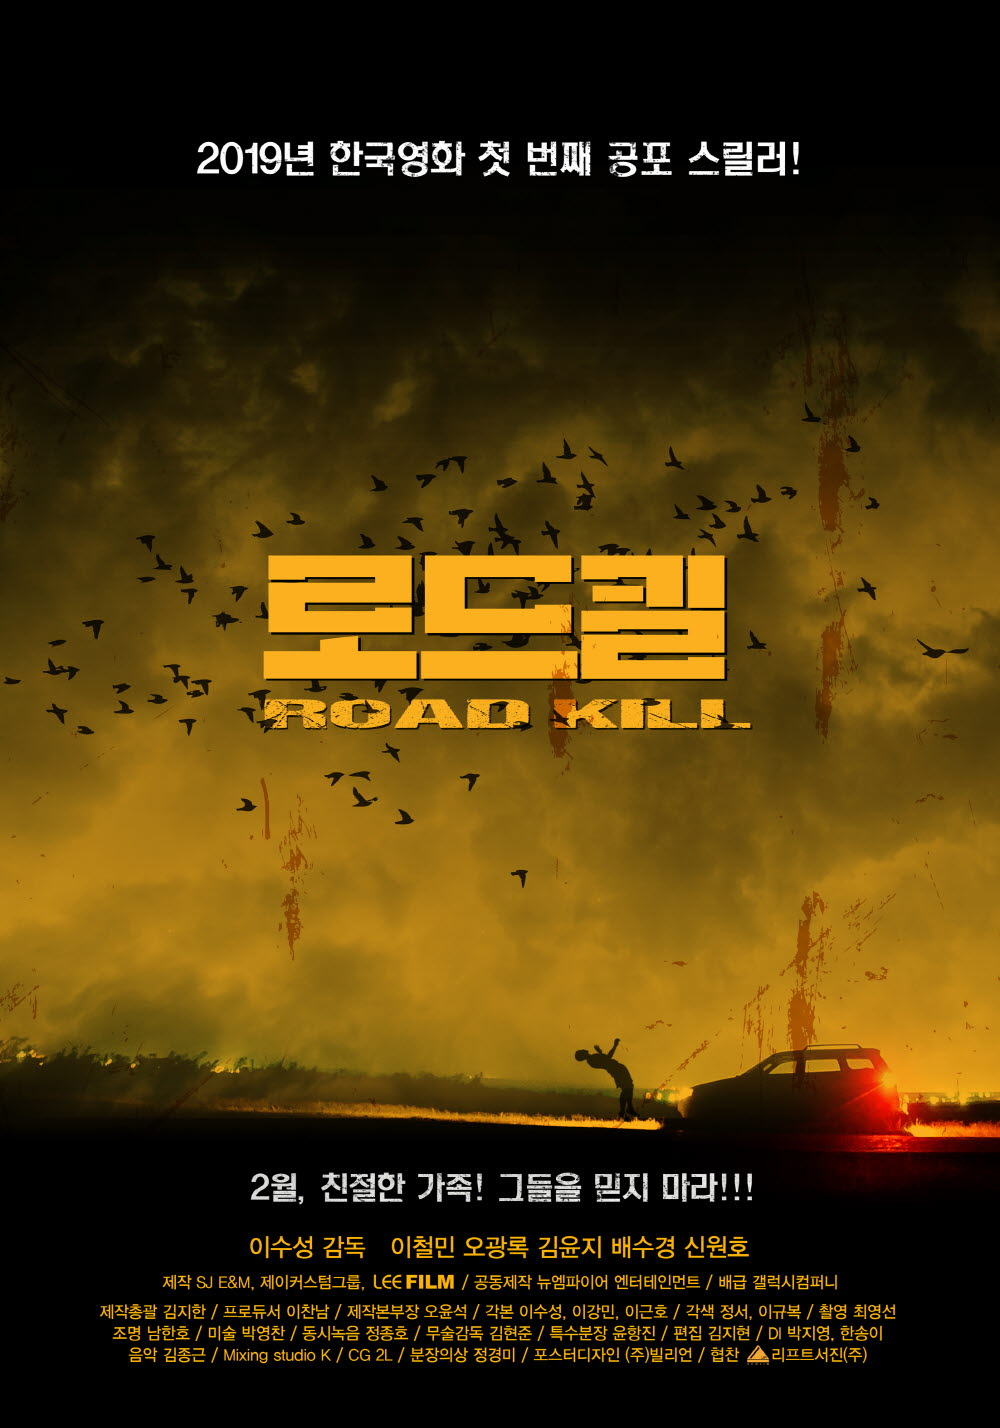 Sinopsis Film Korea Road Kill (2019)